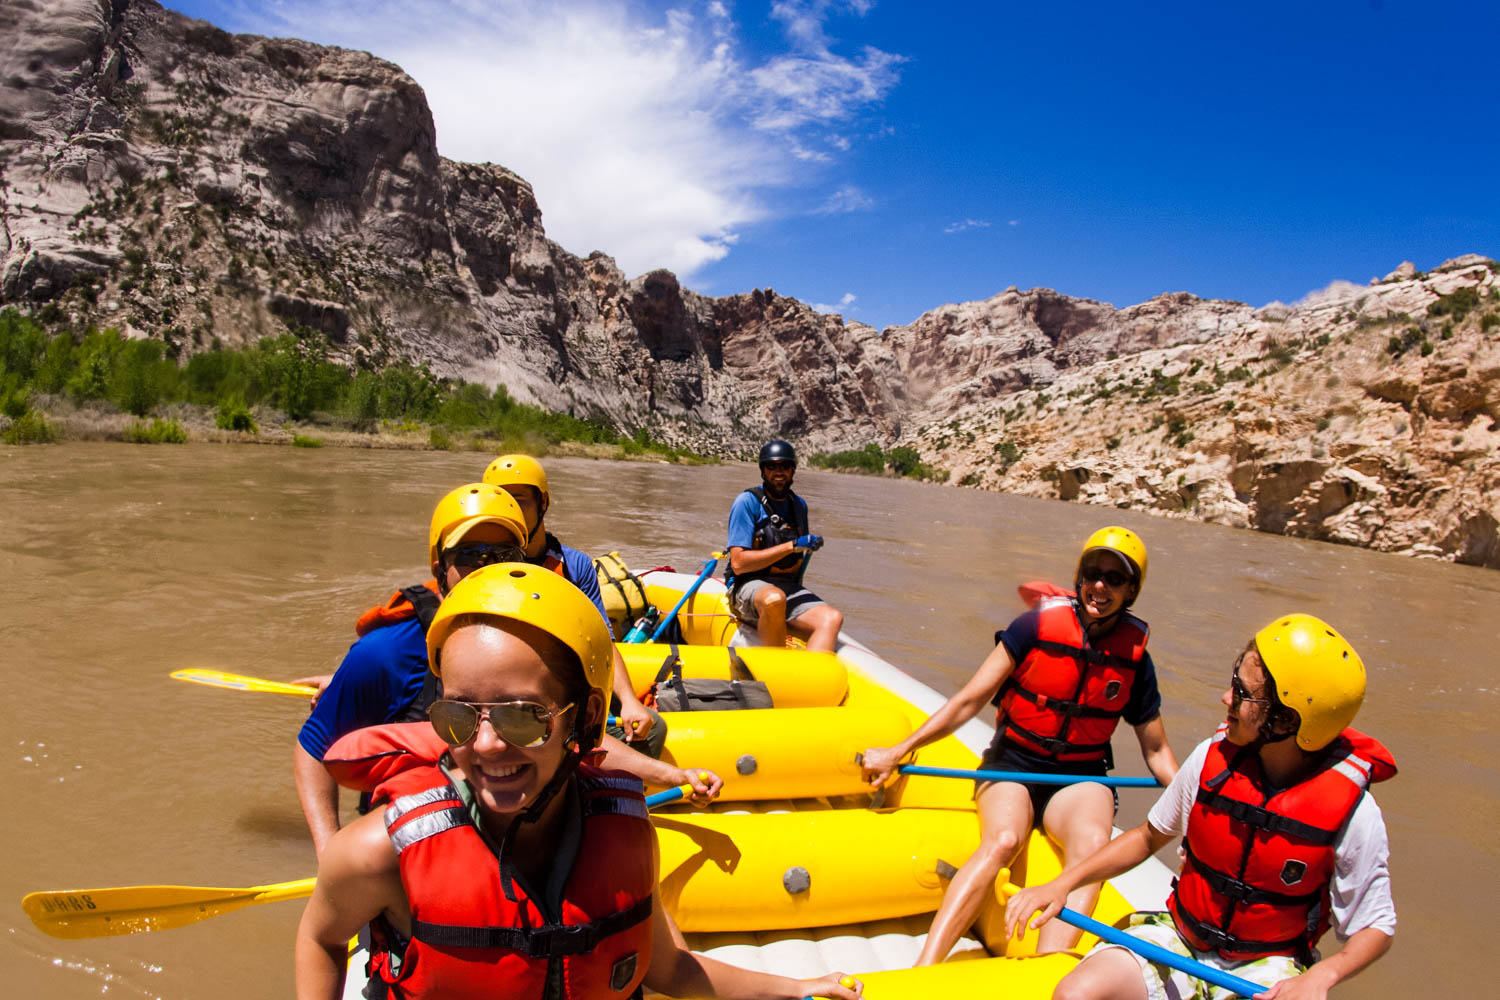 Our daily Utah river rafting expedition through Split Mountain Canyon on the Green River covers approximately nine river miles. There are four Class II - III rapids in this stretch of the Green River: Moonshine, S.O.B., Schoolboy and Inglesby. This day rafting trip is the perfect mix of spectacular scenery with just enough whitewater splashing to add a little spice.